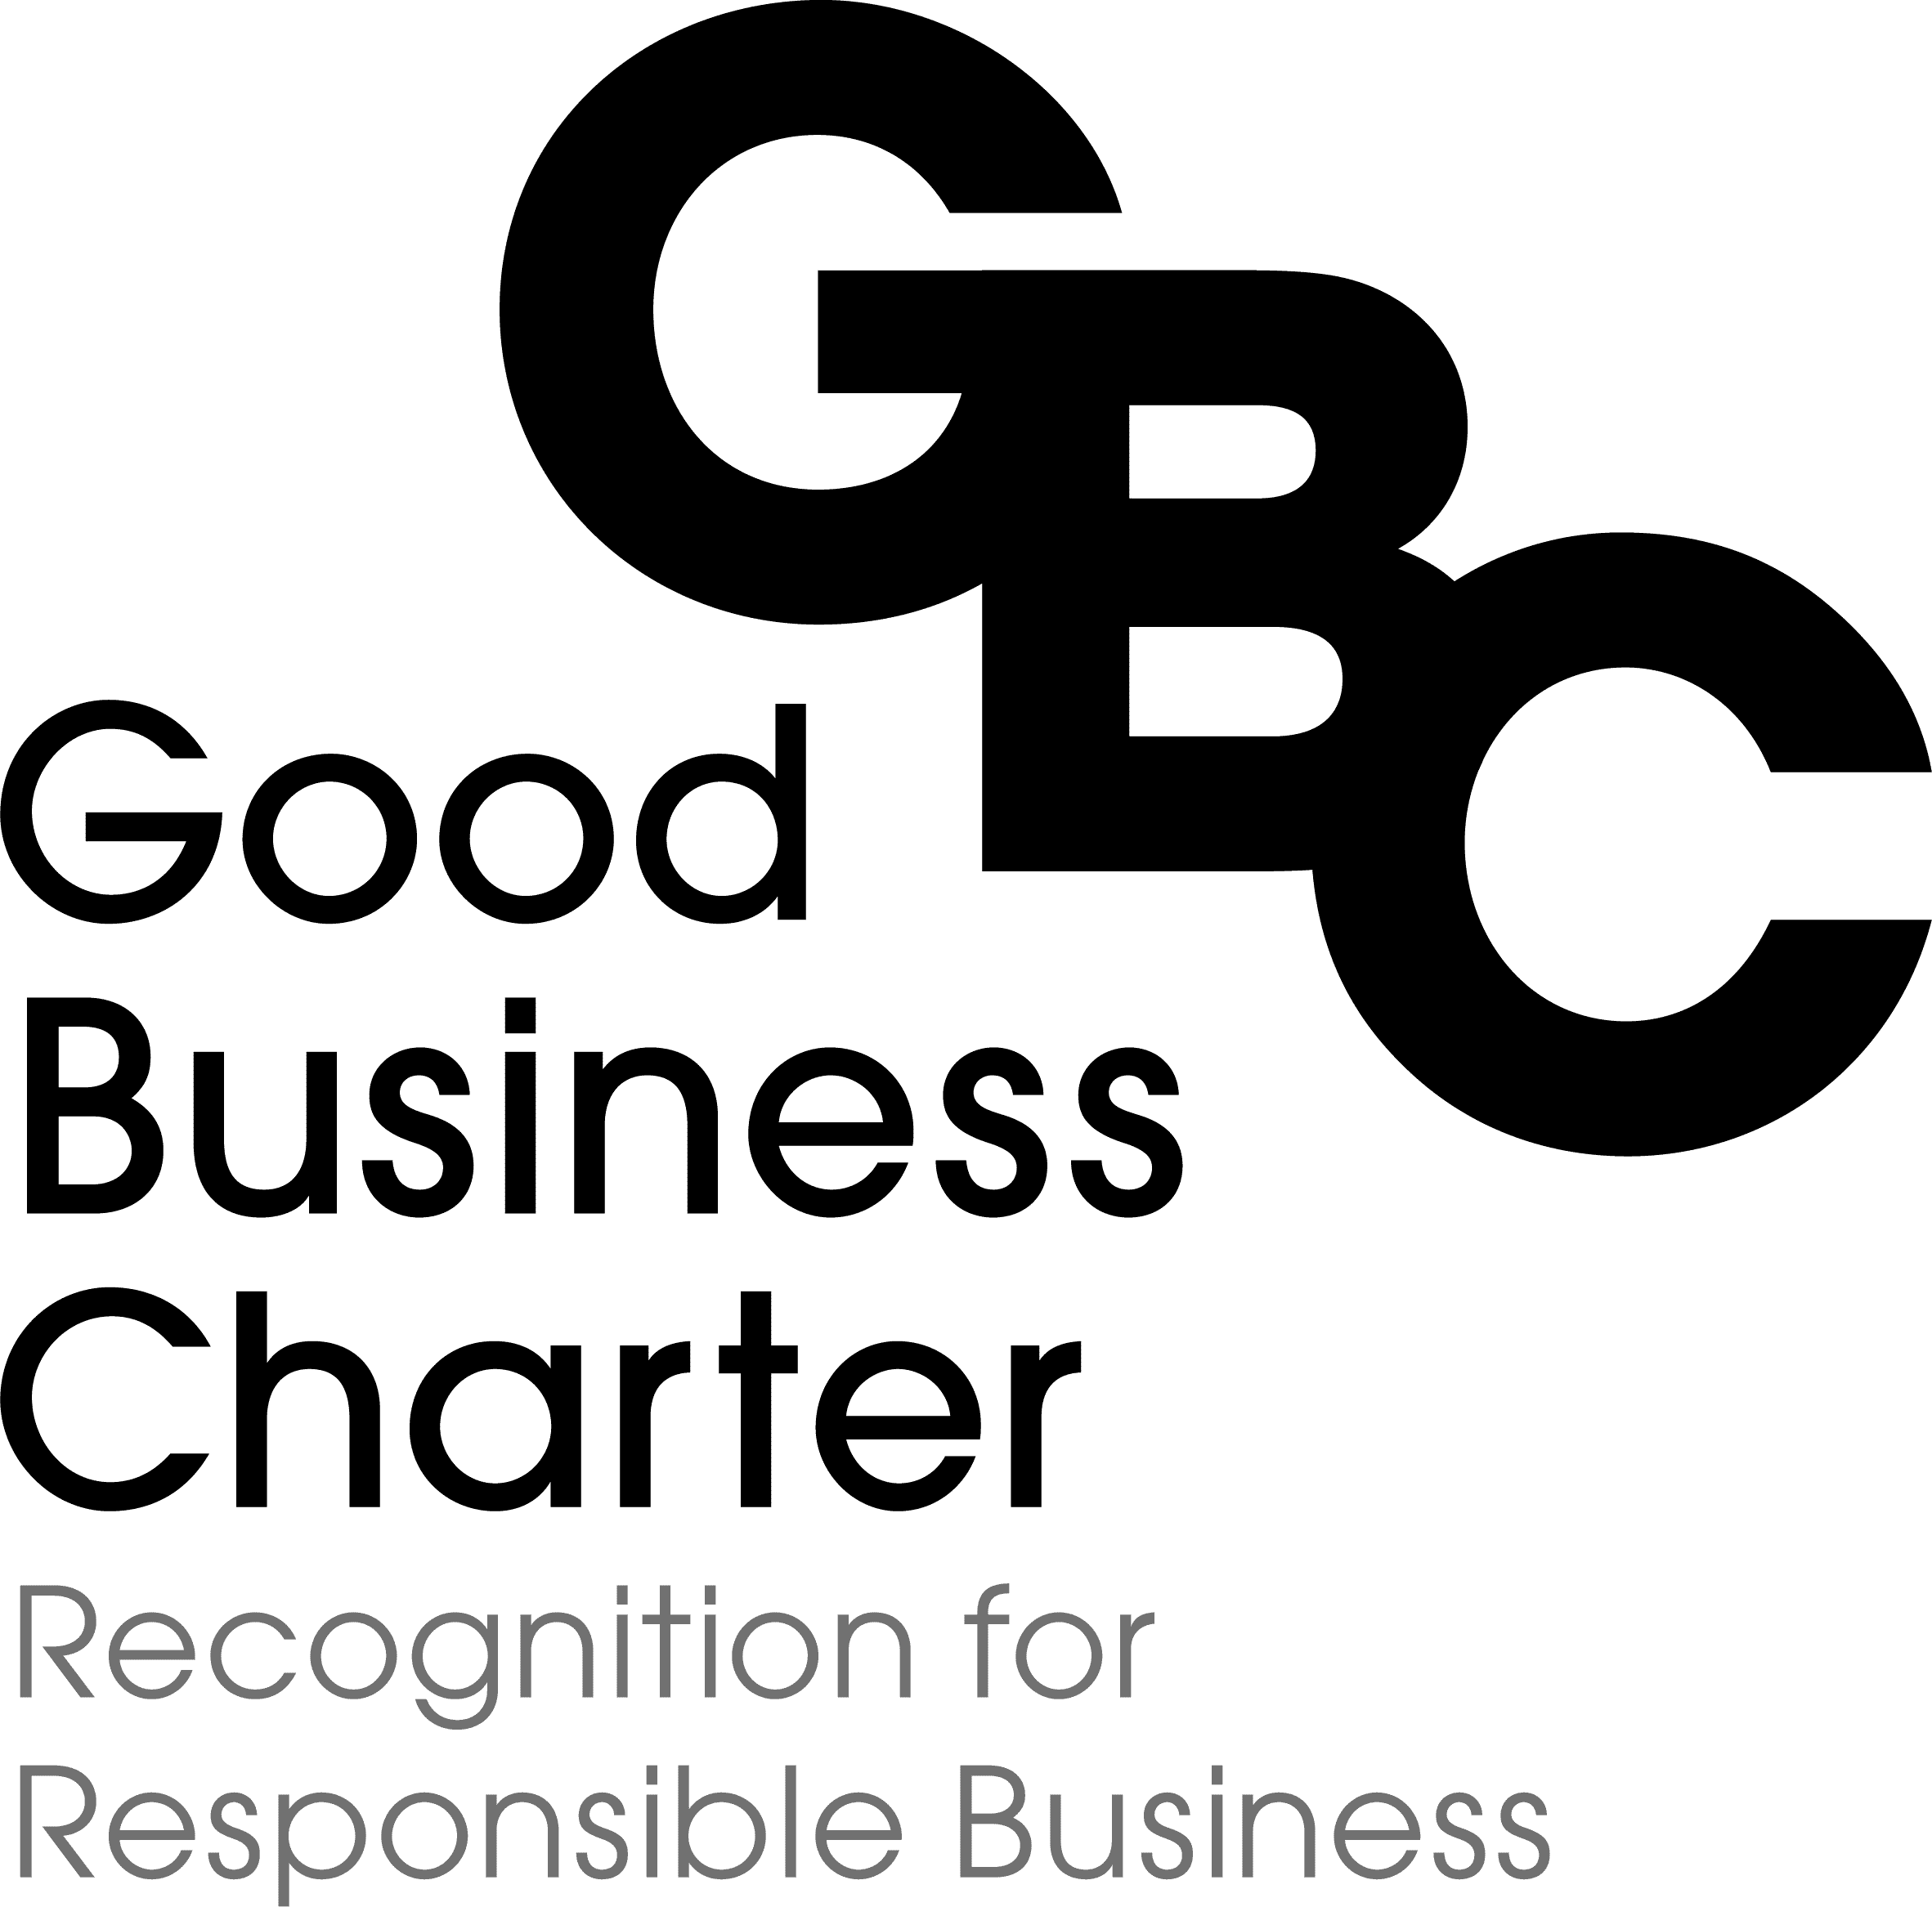 The Good Business Charter